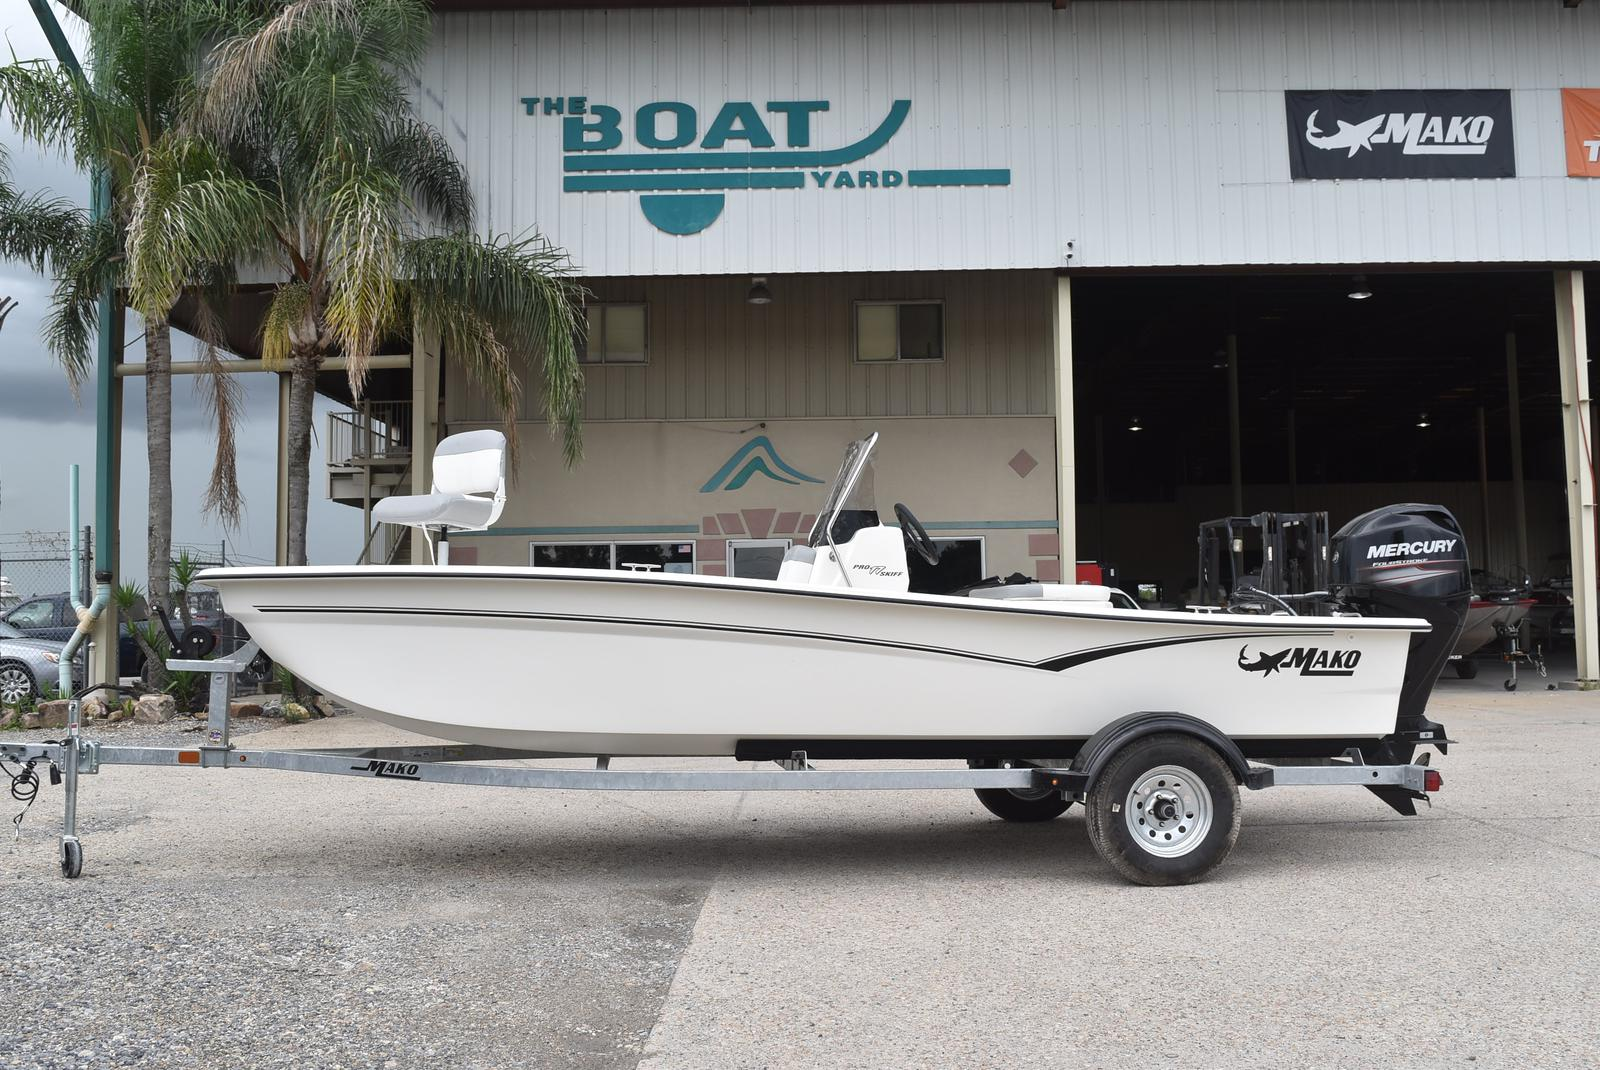 2020 Mako boat for sale, model of the boat is Pro Skiff 17, 75 ELPT & Image # 50 of 702